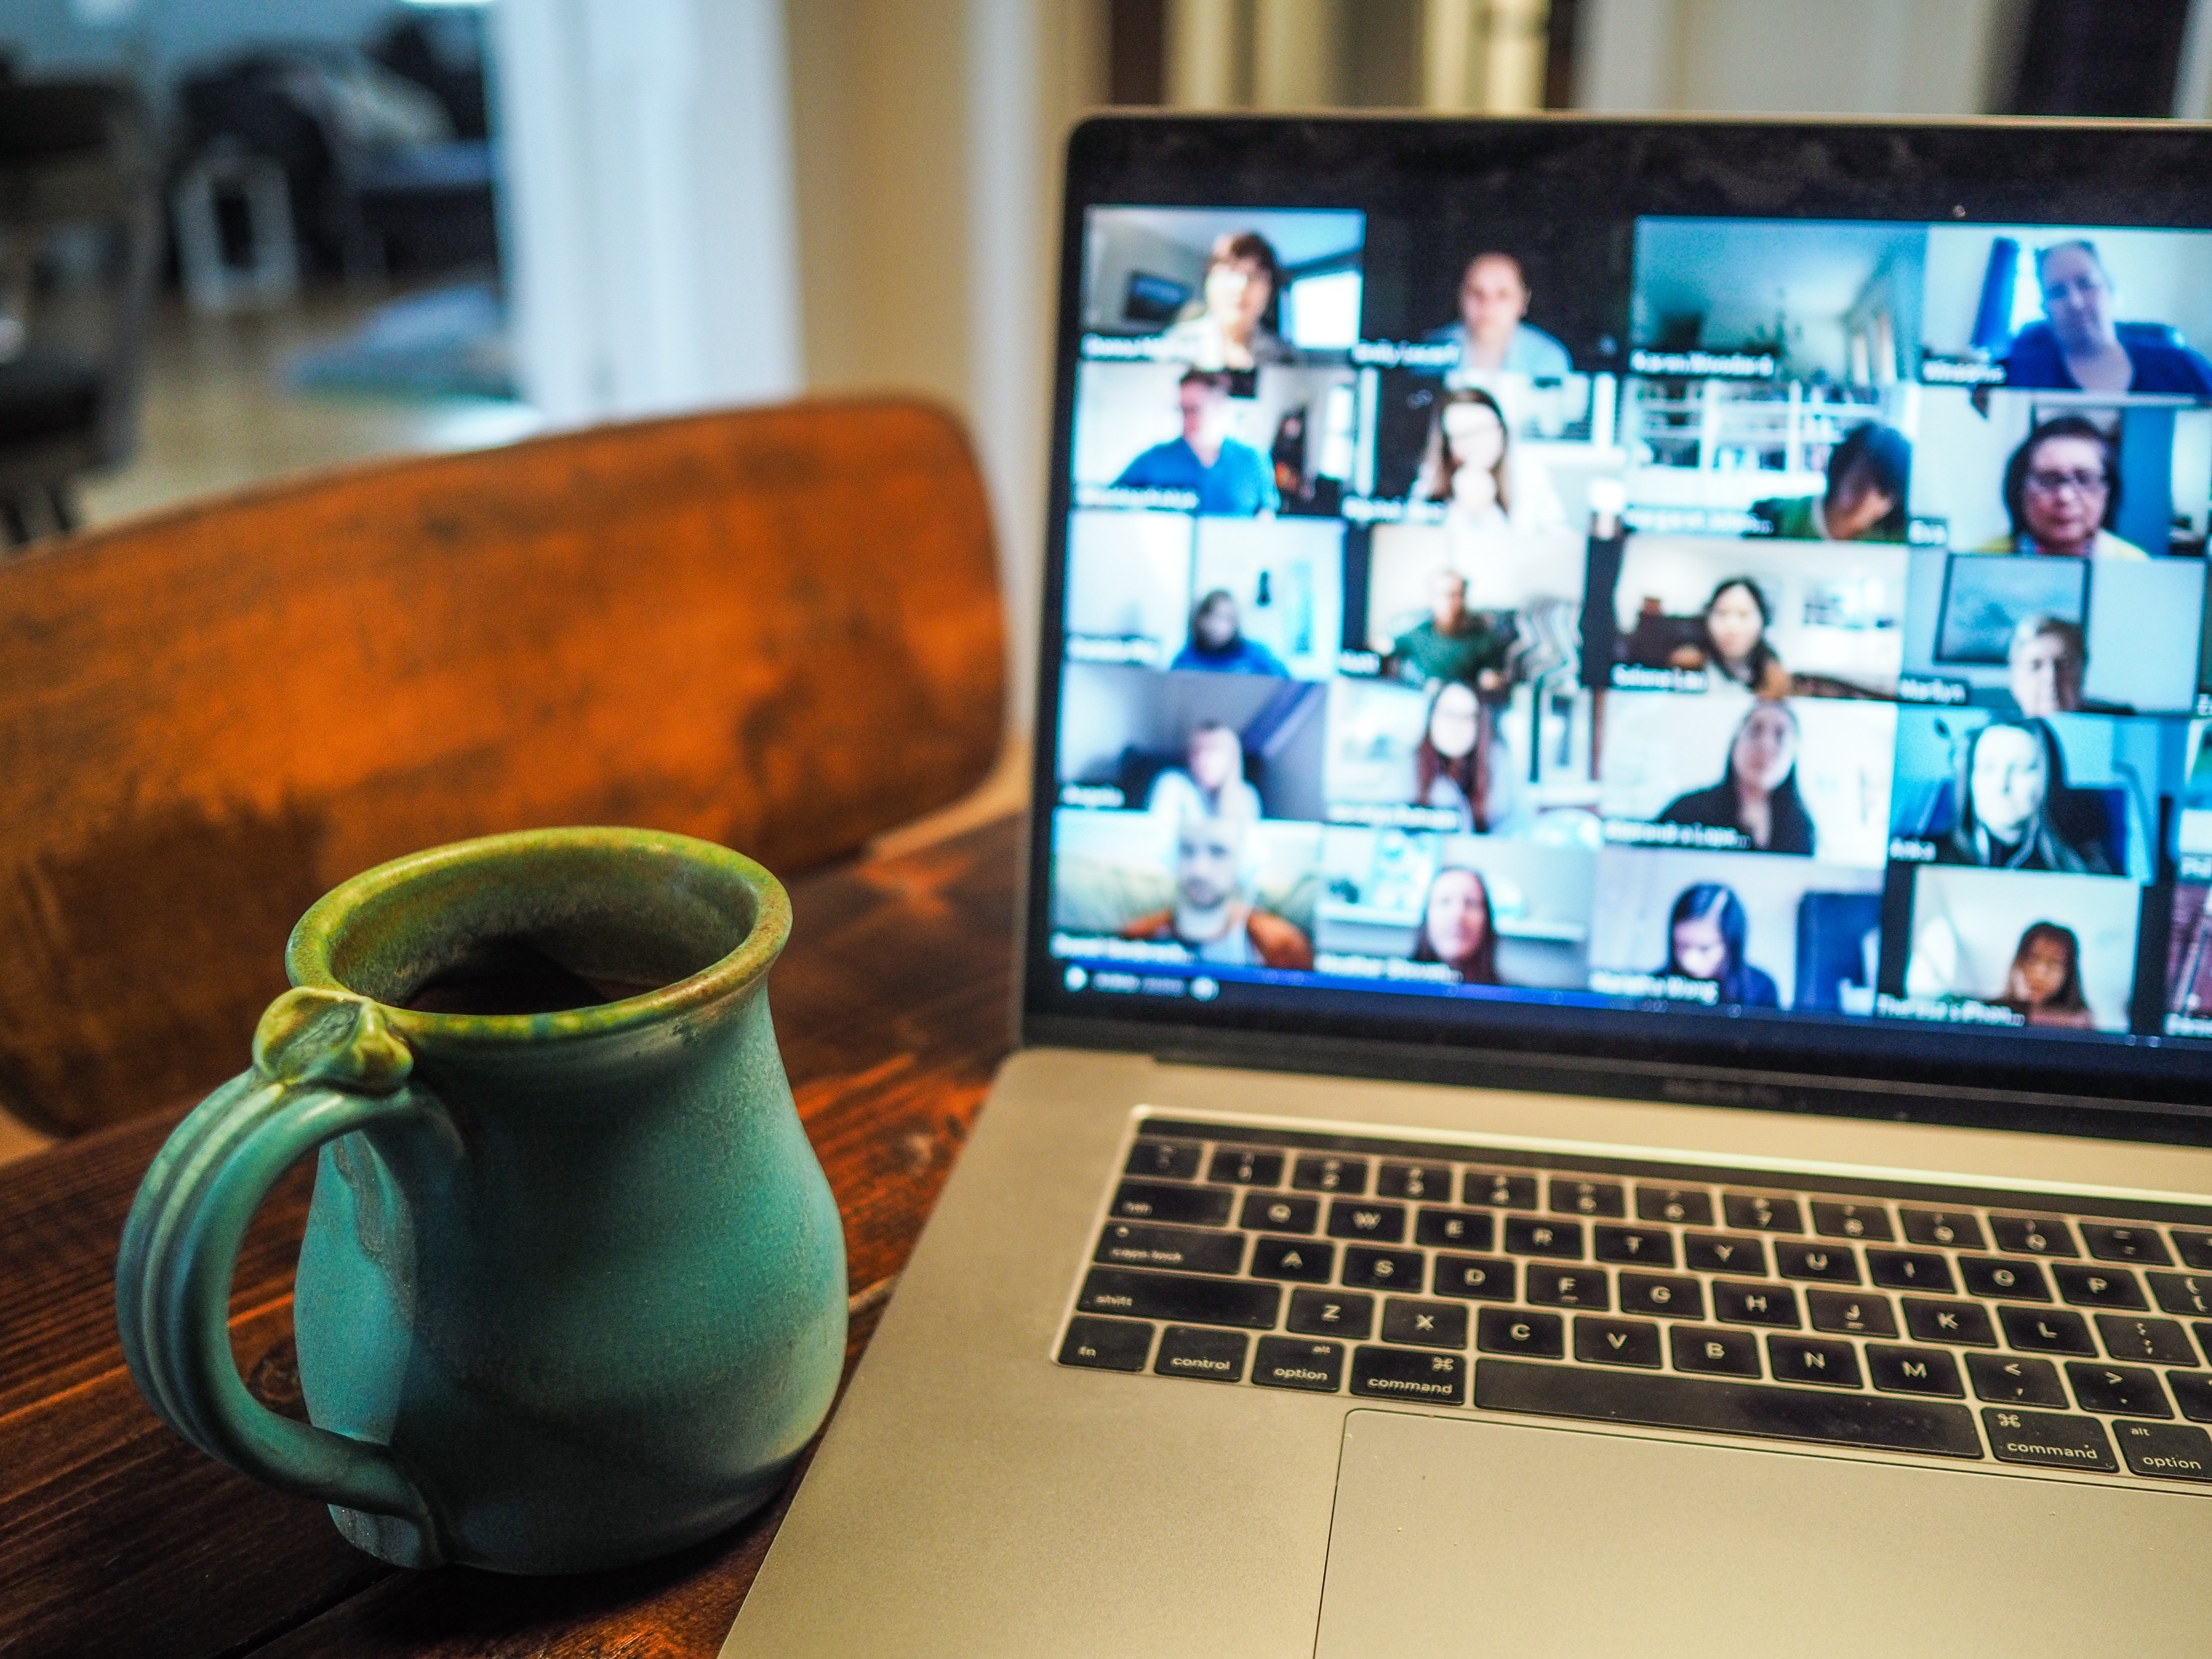 Work from home remote work working from home distance work office